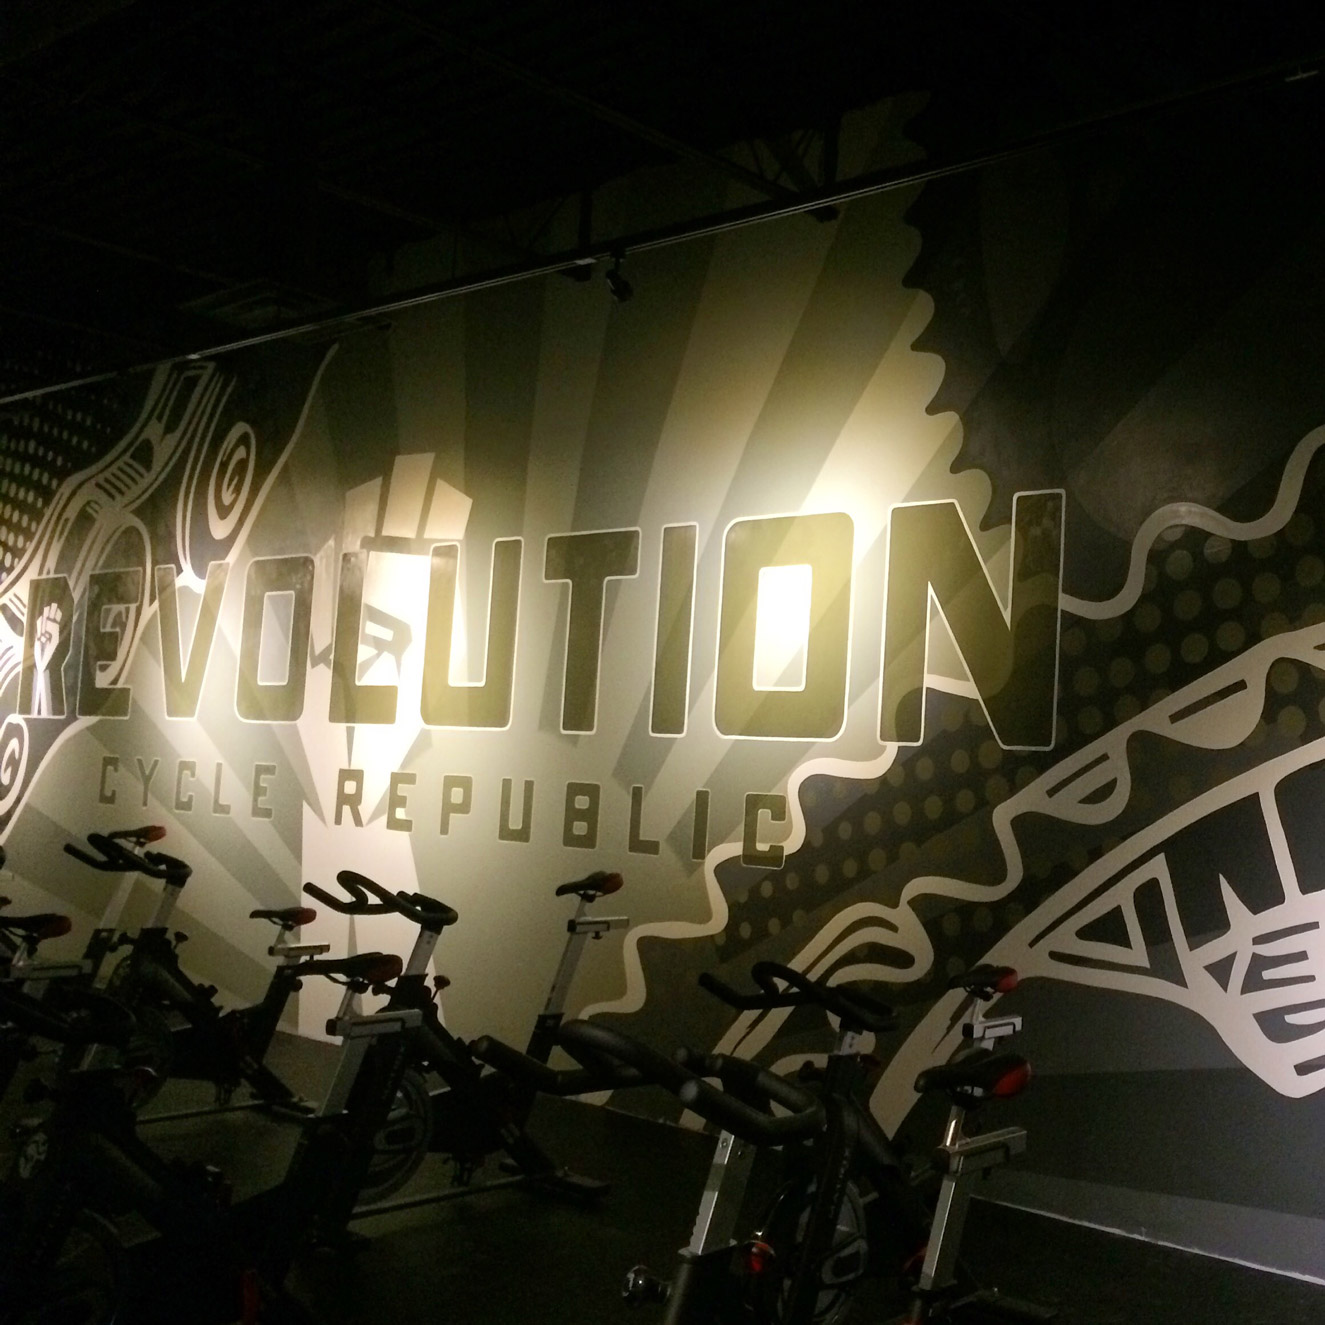 Cycling Studio Interior Mural image